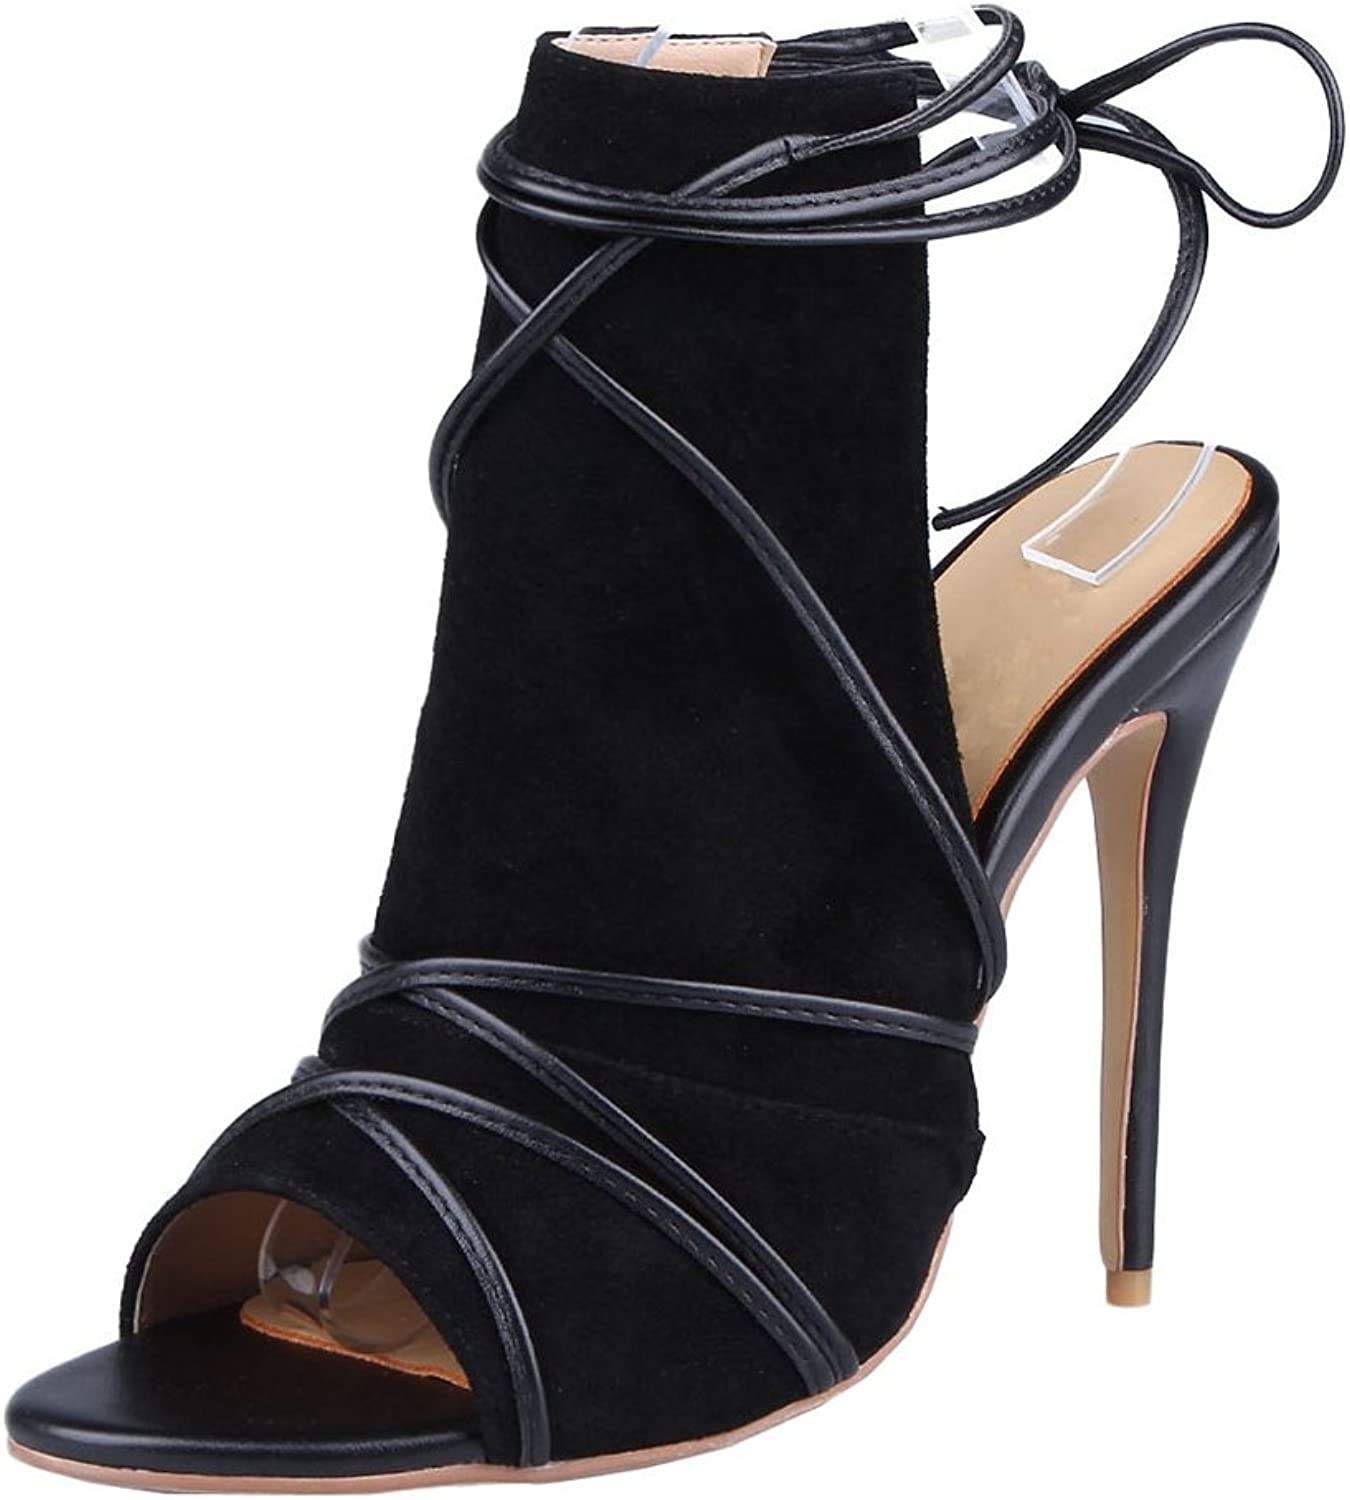 TDA Women's Peep Toe Slingback Gladiator Suede Evening Party Dress Sexy Stiletto Sandals